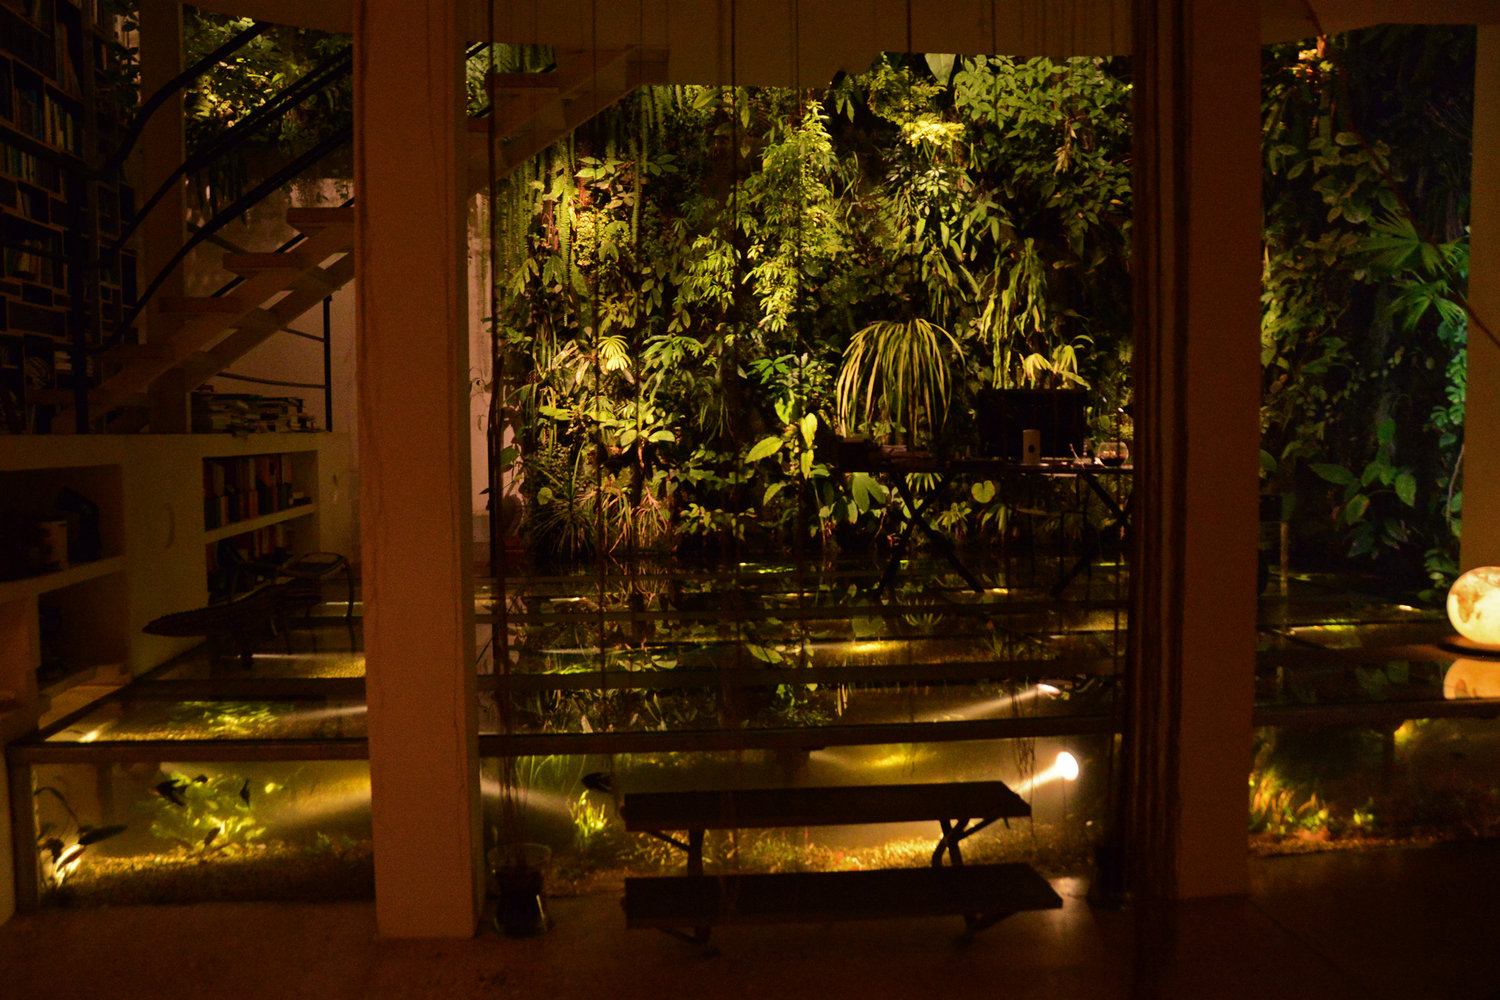 Vertical Garden and Christarium at night, Patrick's home | Courtesy of Patrick Blanc